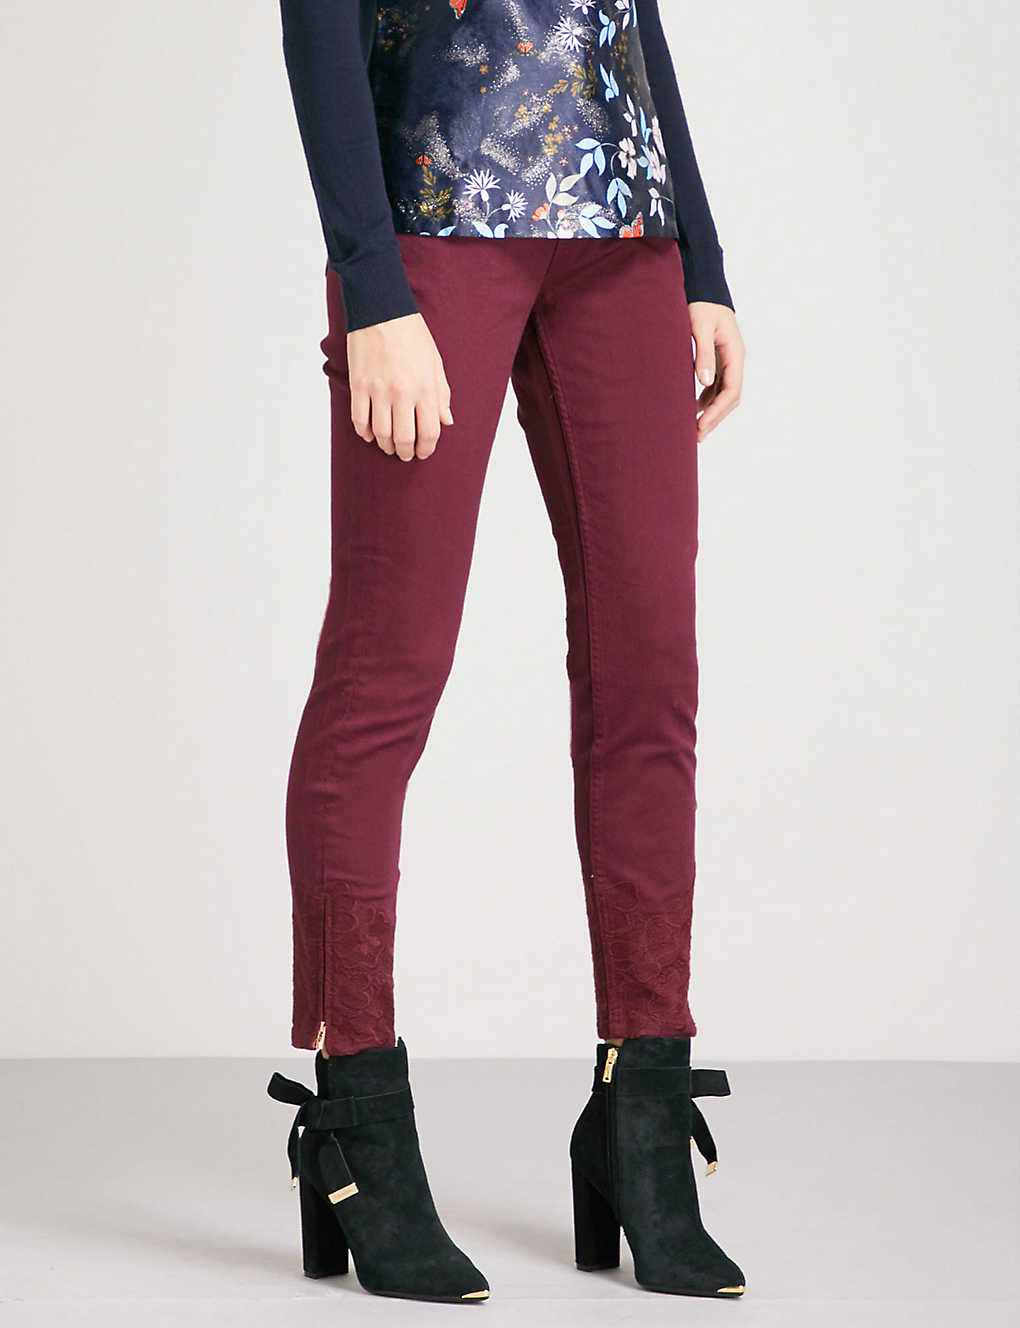 66248dd50 TED BAKER - Astasia embroidered skinny mid-rise jeans